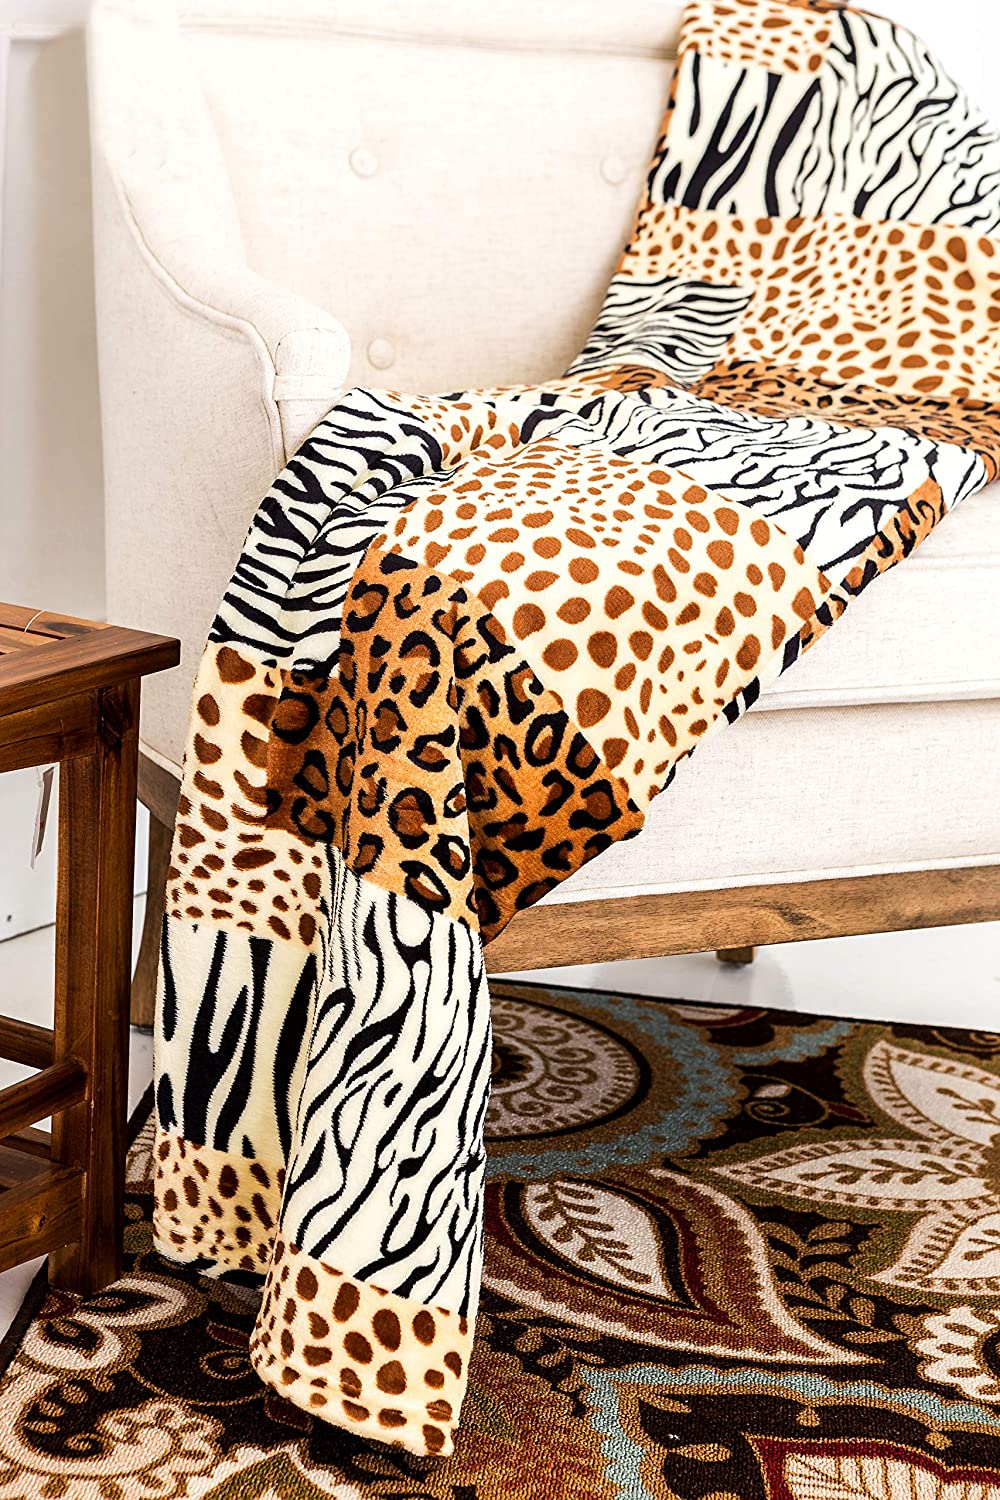 Home Must Haves Zebra Leopard Giraffe Safari Animal Print All Season Extra Soft Warm Sofa Couch Throw Bed Blanket King Size (Queen